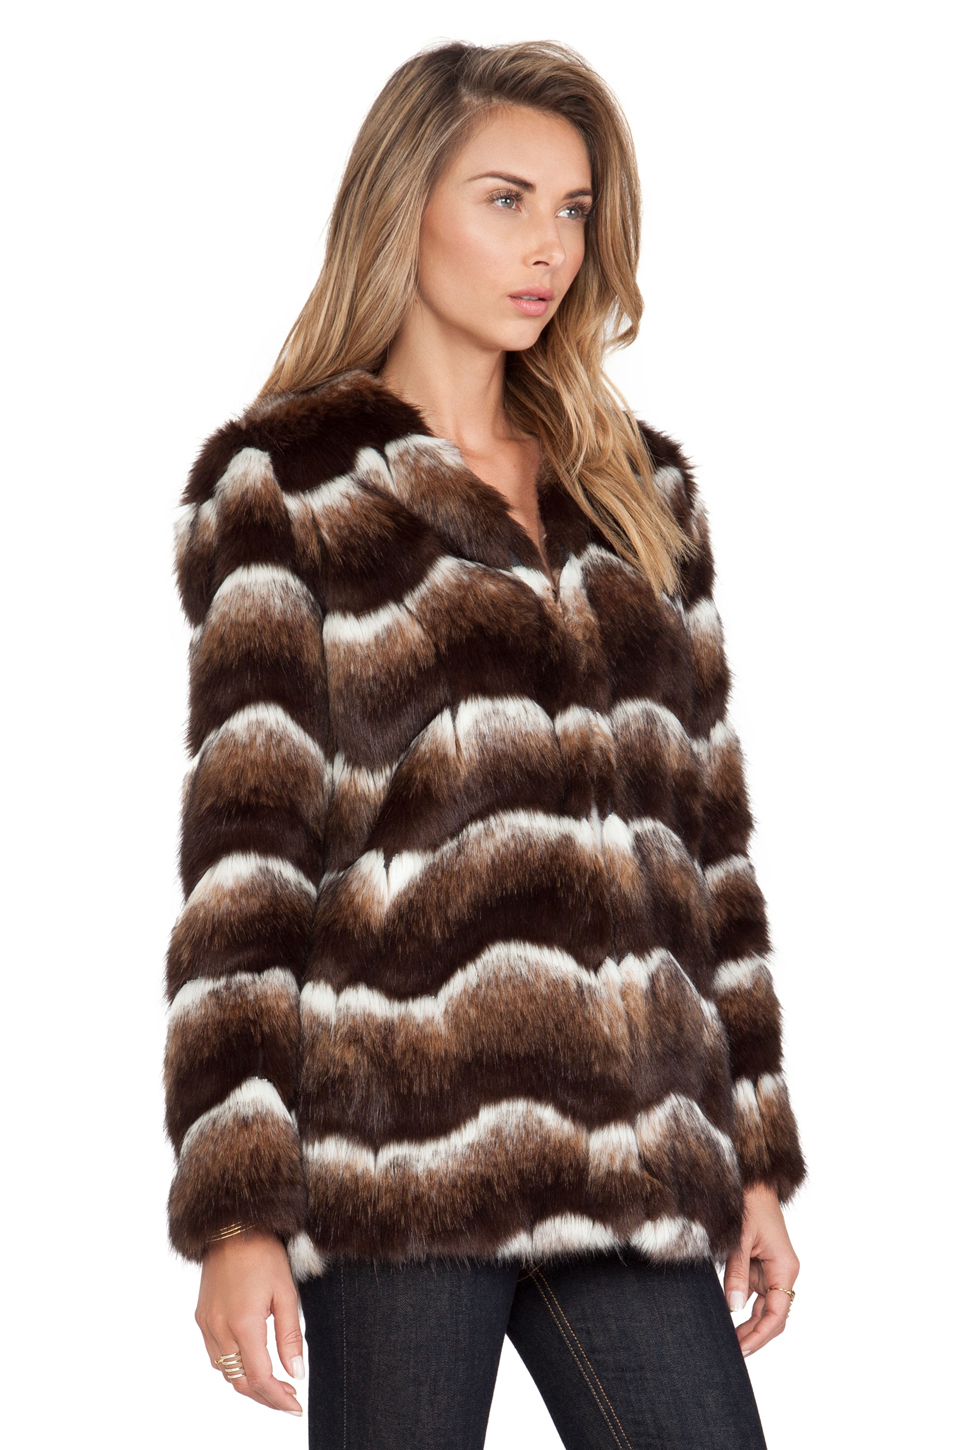 heartLoom Tess Faux Fur Jacket in Coco from REVOLVEclothing.com